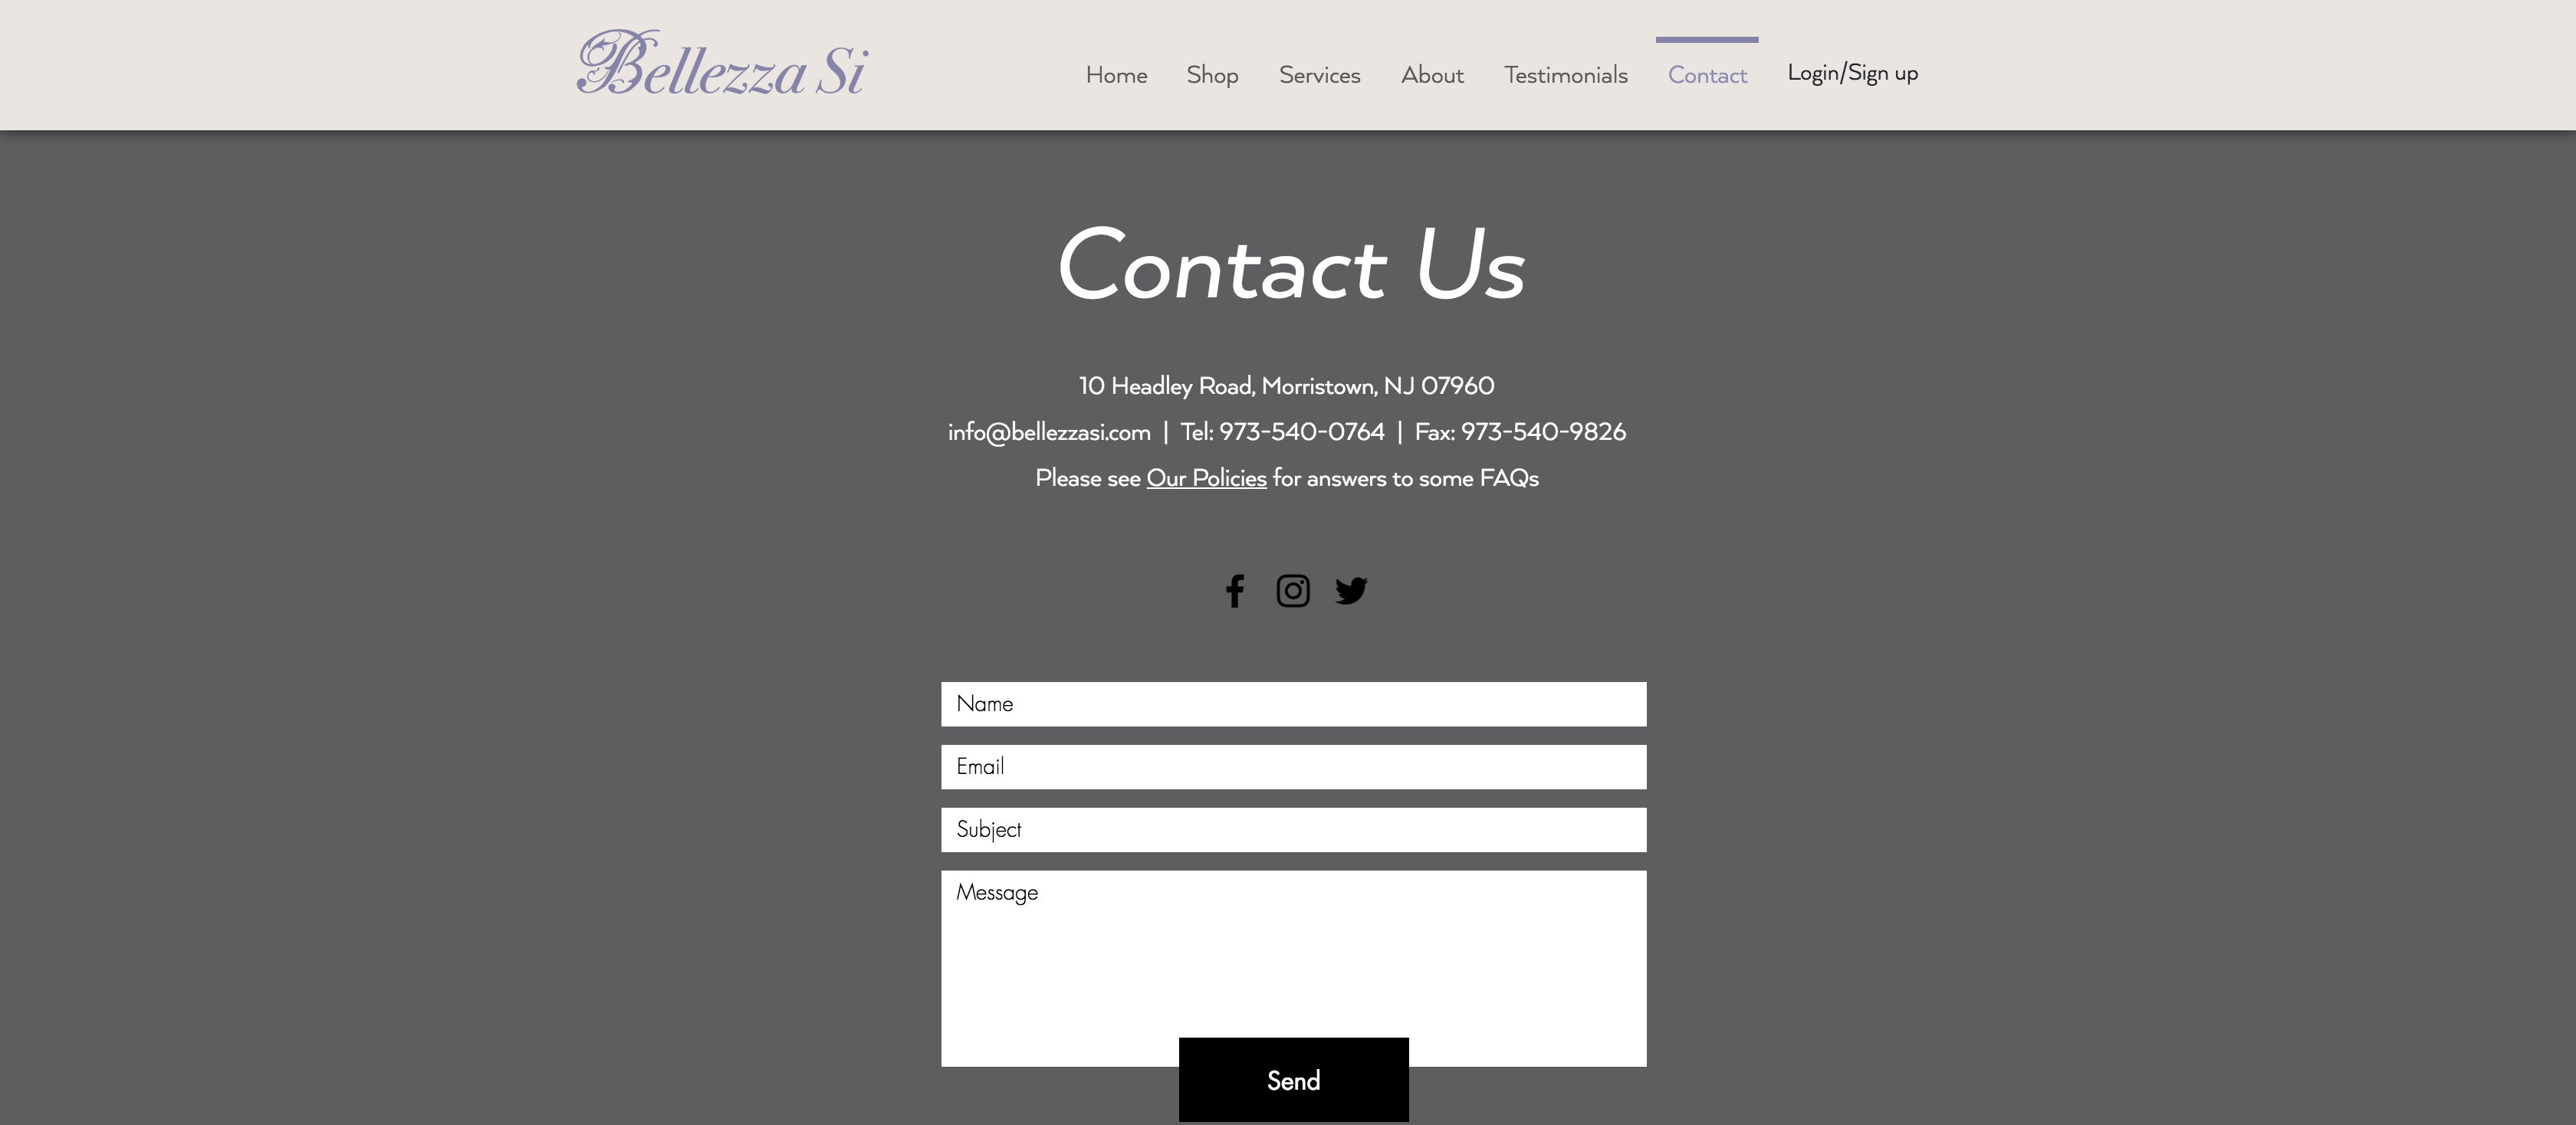 Bellezza Si - Contact Us